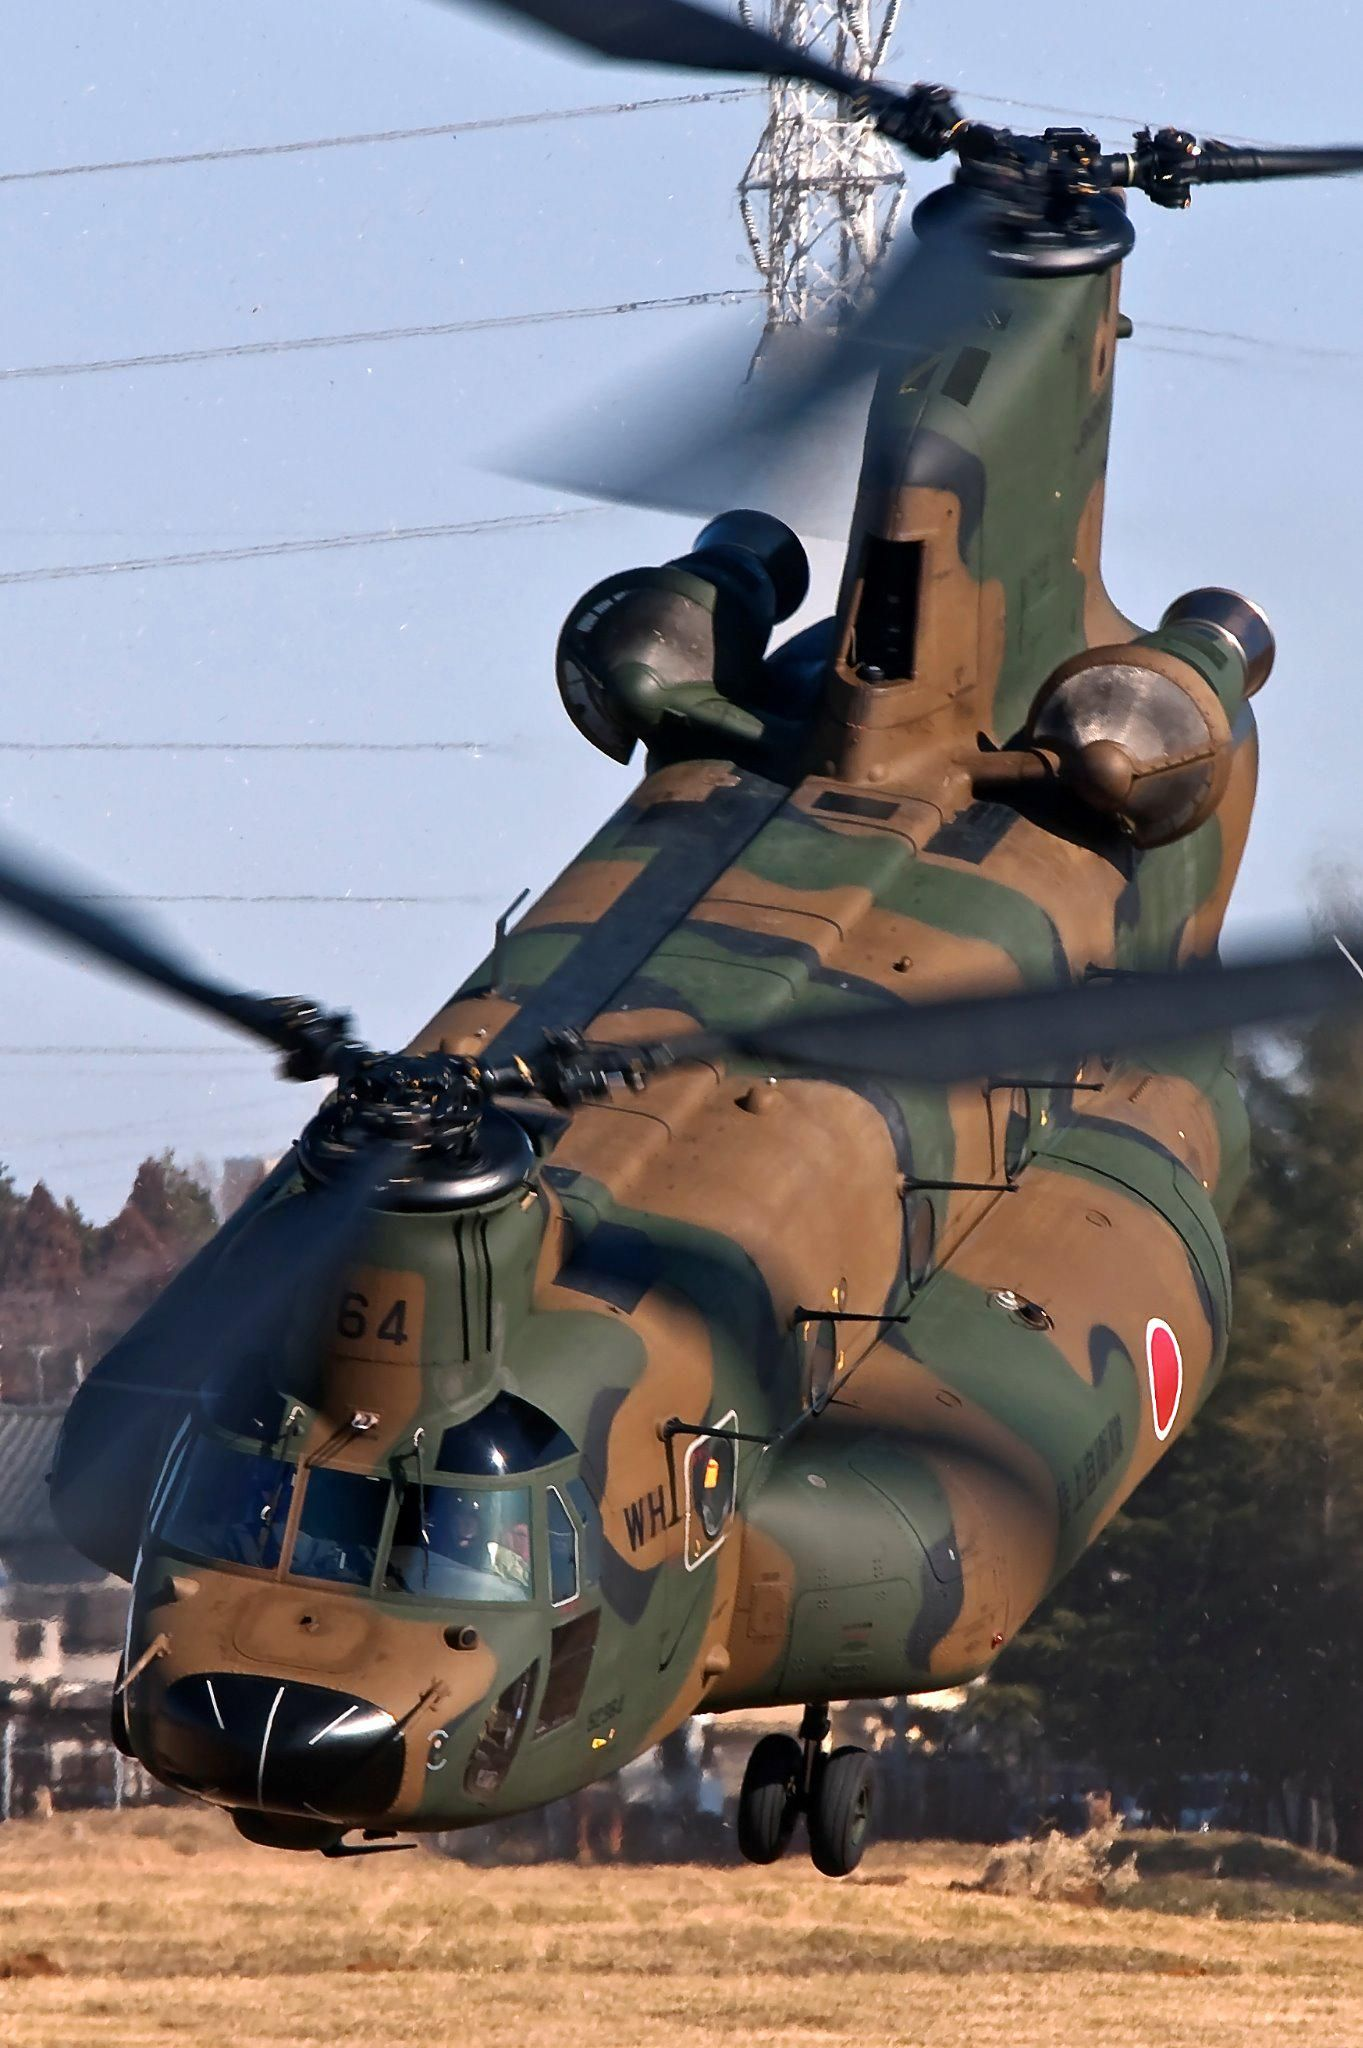 Elicottero Ch : Ch j chinook helicopters aerei